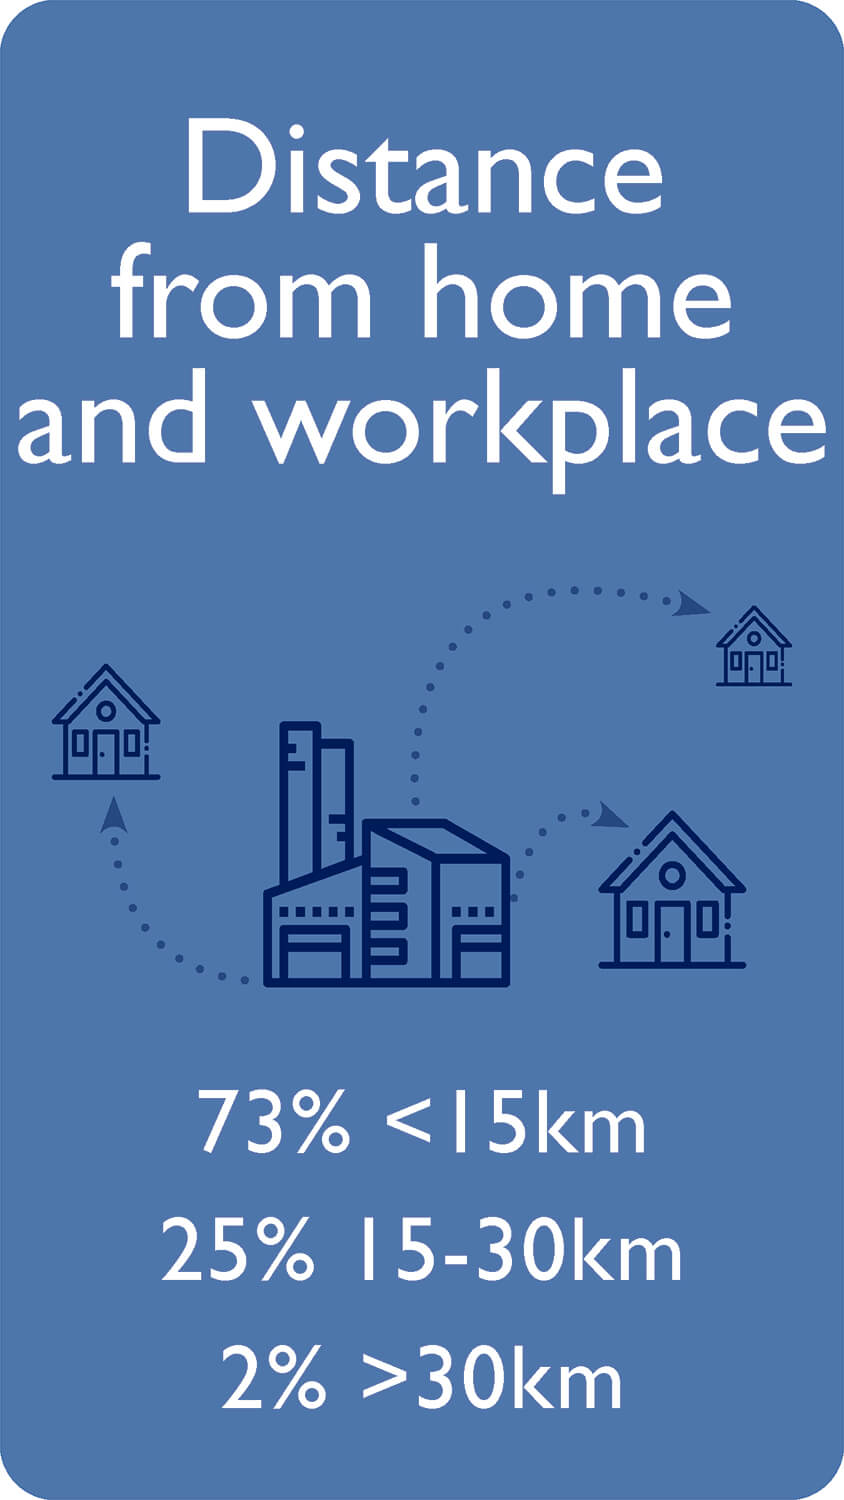 Distance from home and workplace 73% <15km 25% 15-30km 2% >30km